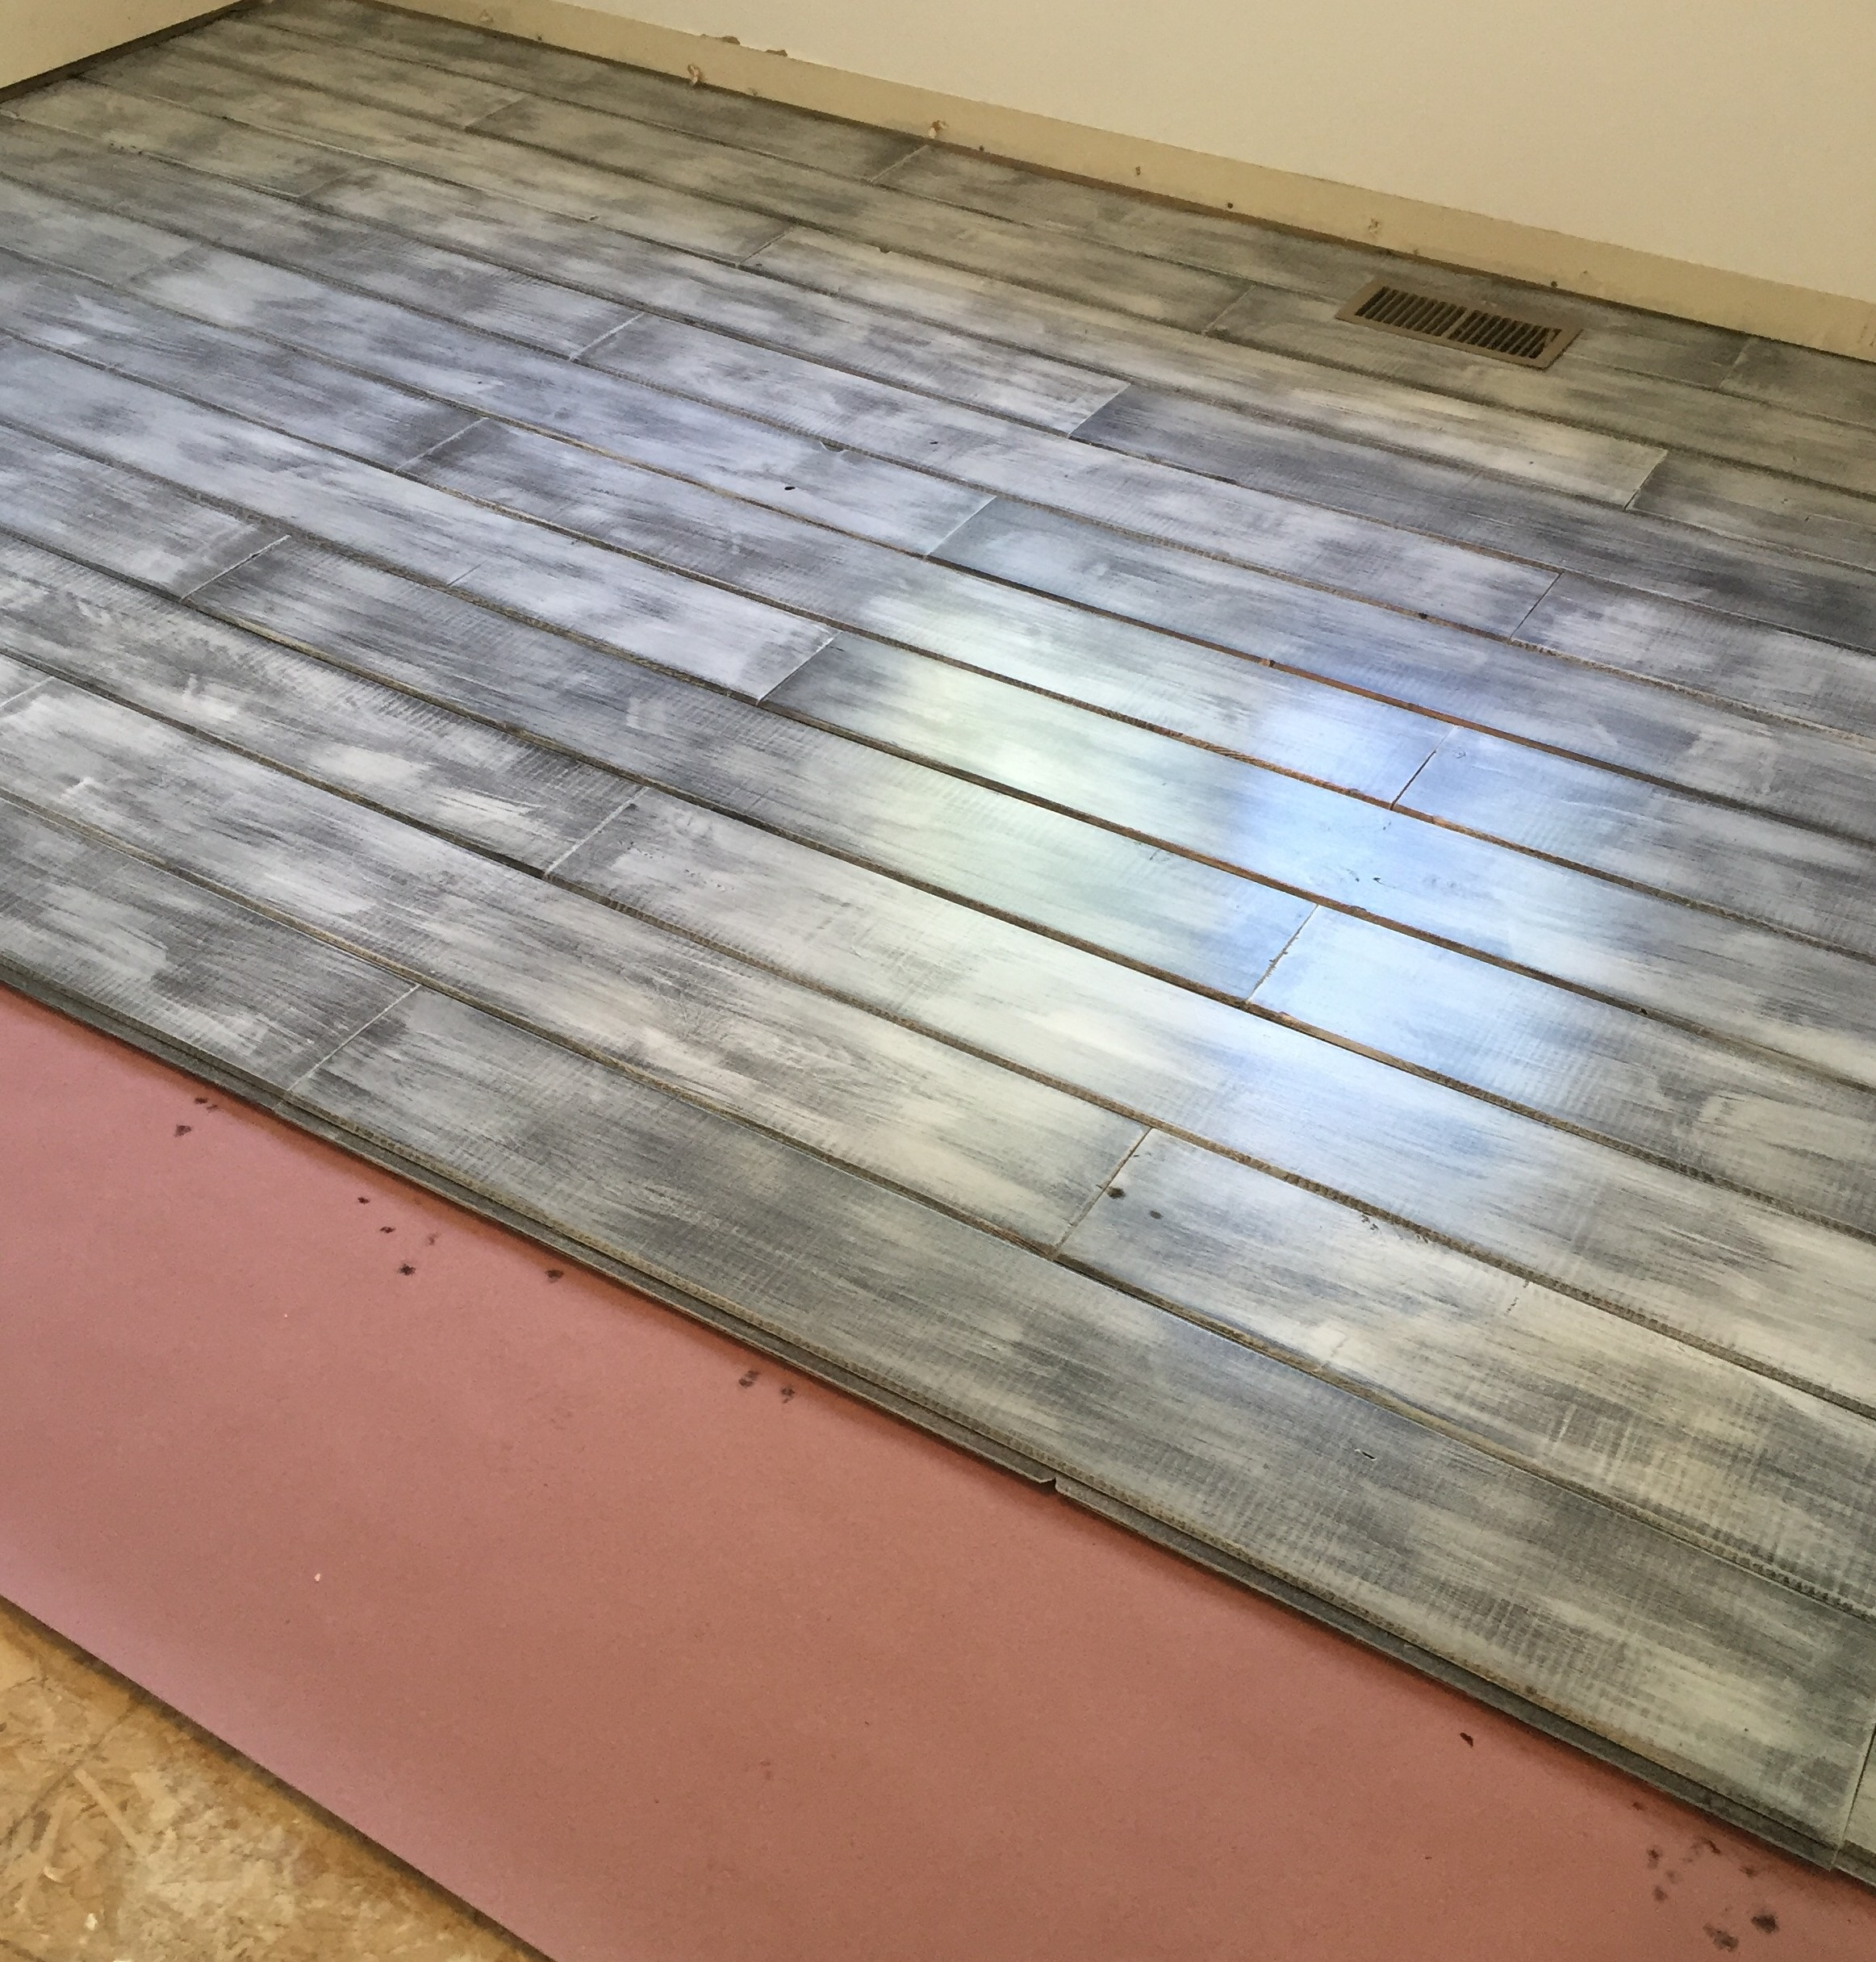 Flooring being layed down using car-siding.